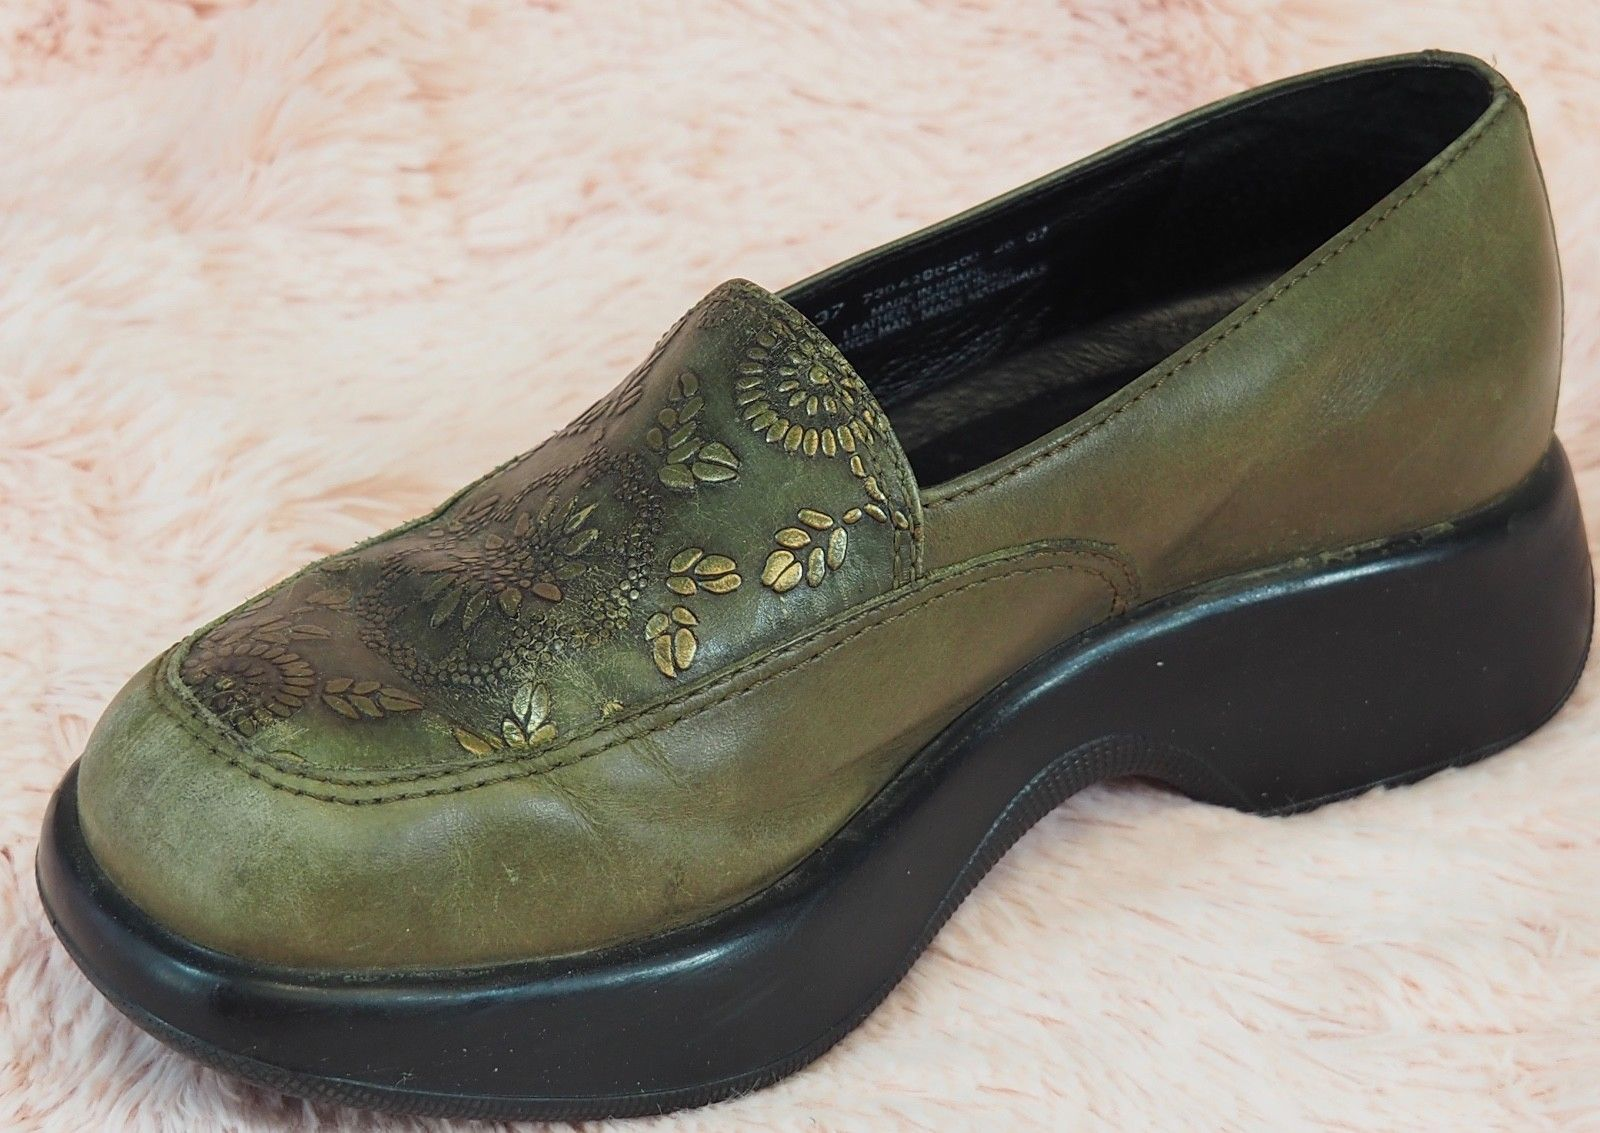 e9739848228 Dansko Clogs Loafers Shoes Womens 37 6.5-7 and 32 similar items. 57